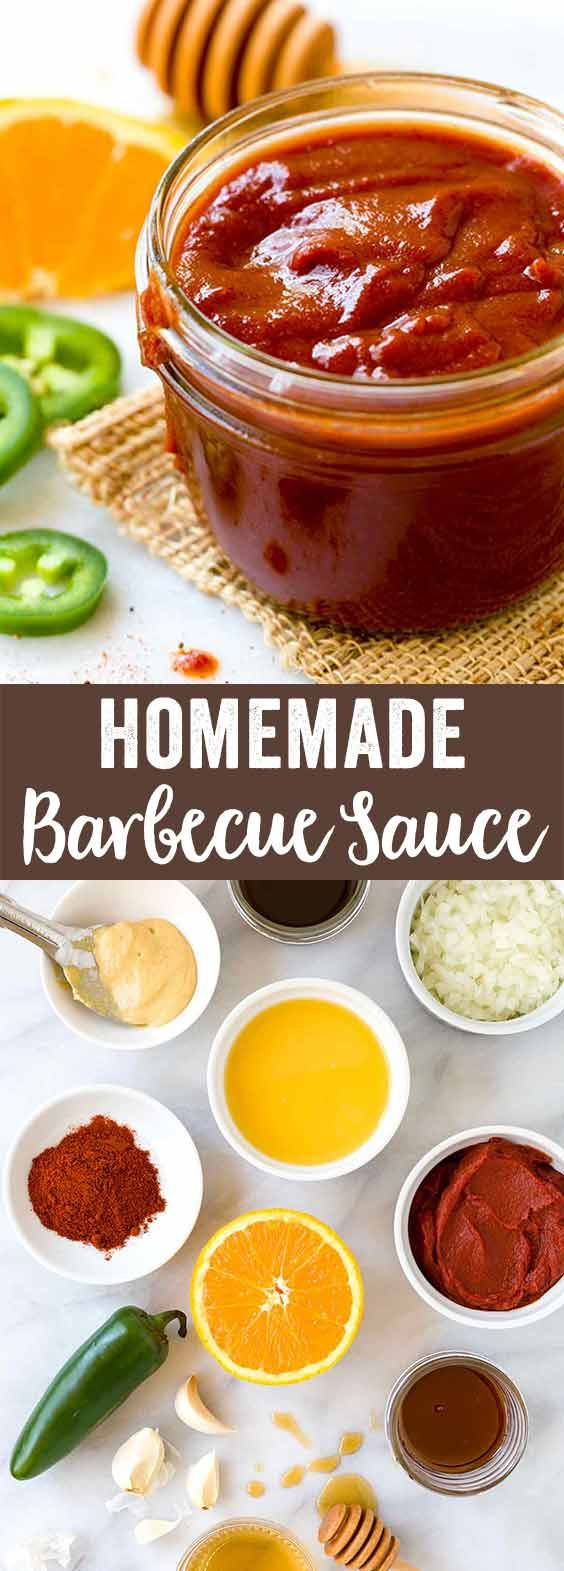 Homemade barbecue sauce made with a thick tomato base complements any meat with spicy flavor and sweet notes. Ready in 30 minutes, it's the perfect add-on for grilled meats and other summertime BBQ recipes. via @foodiegavin